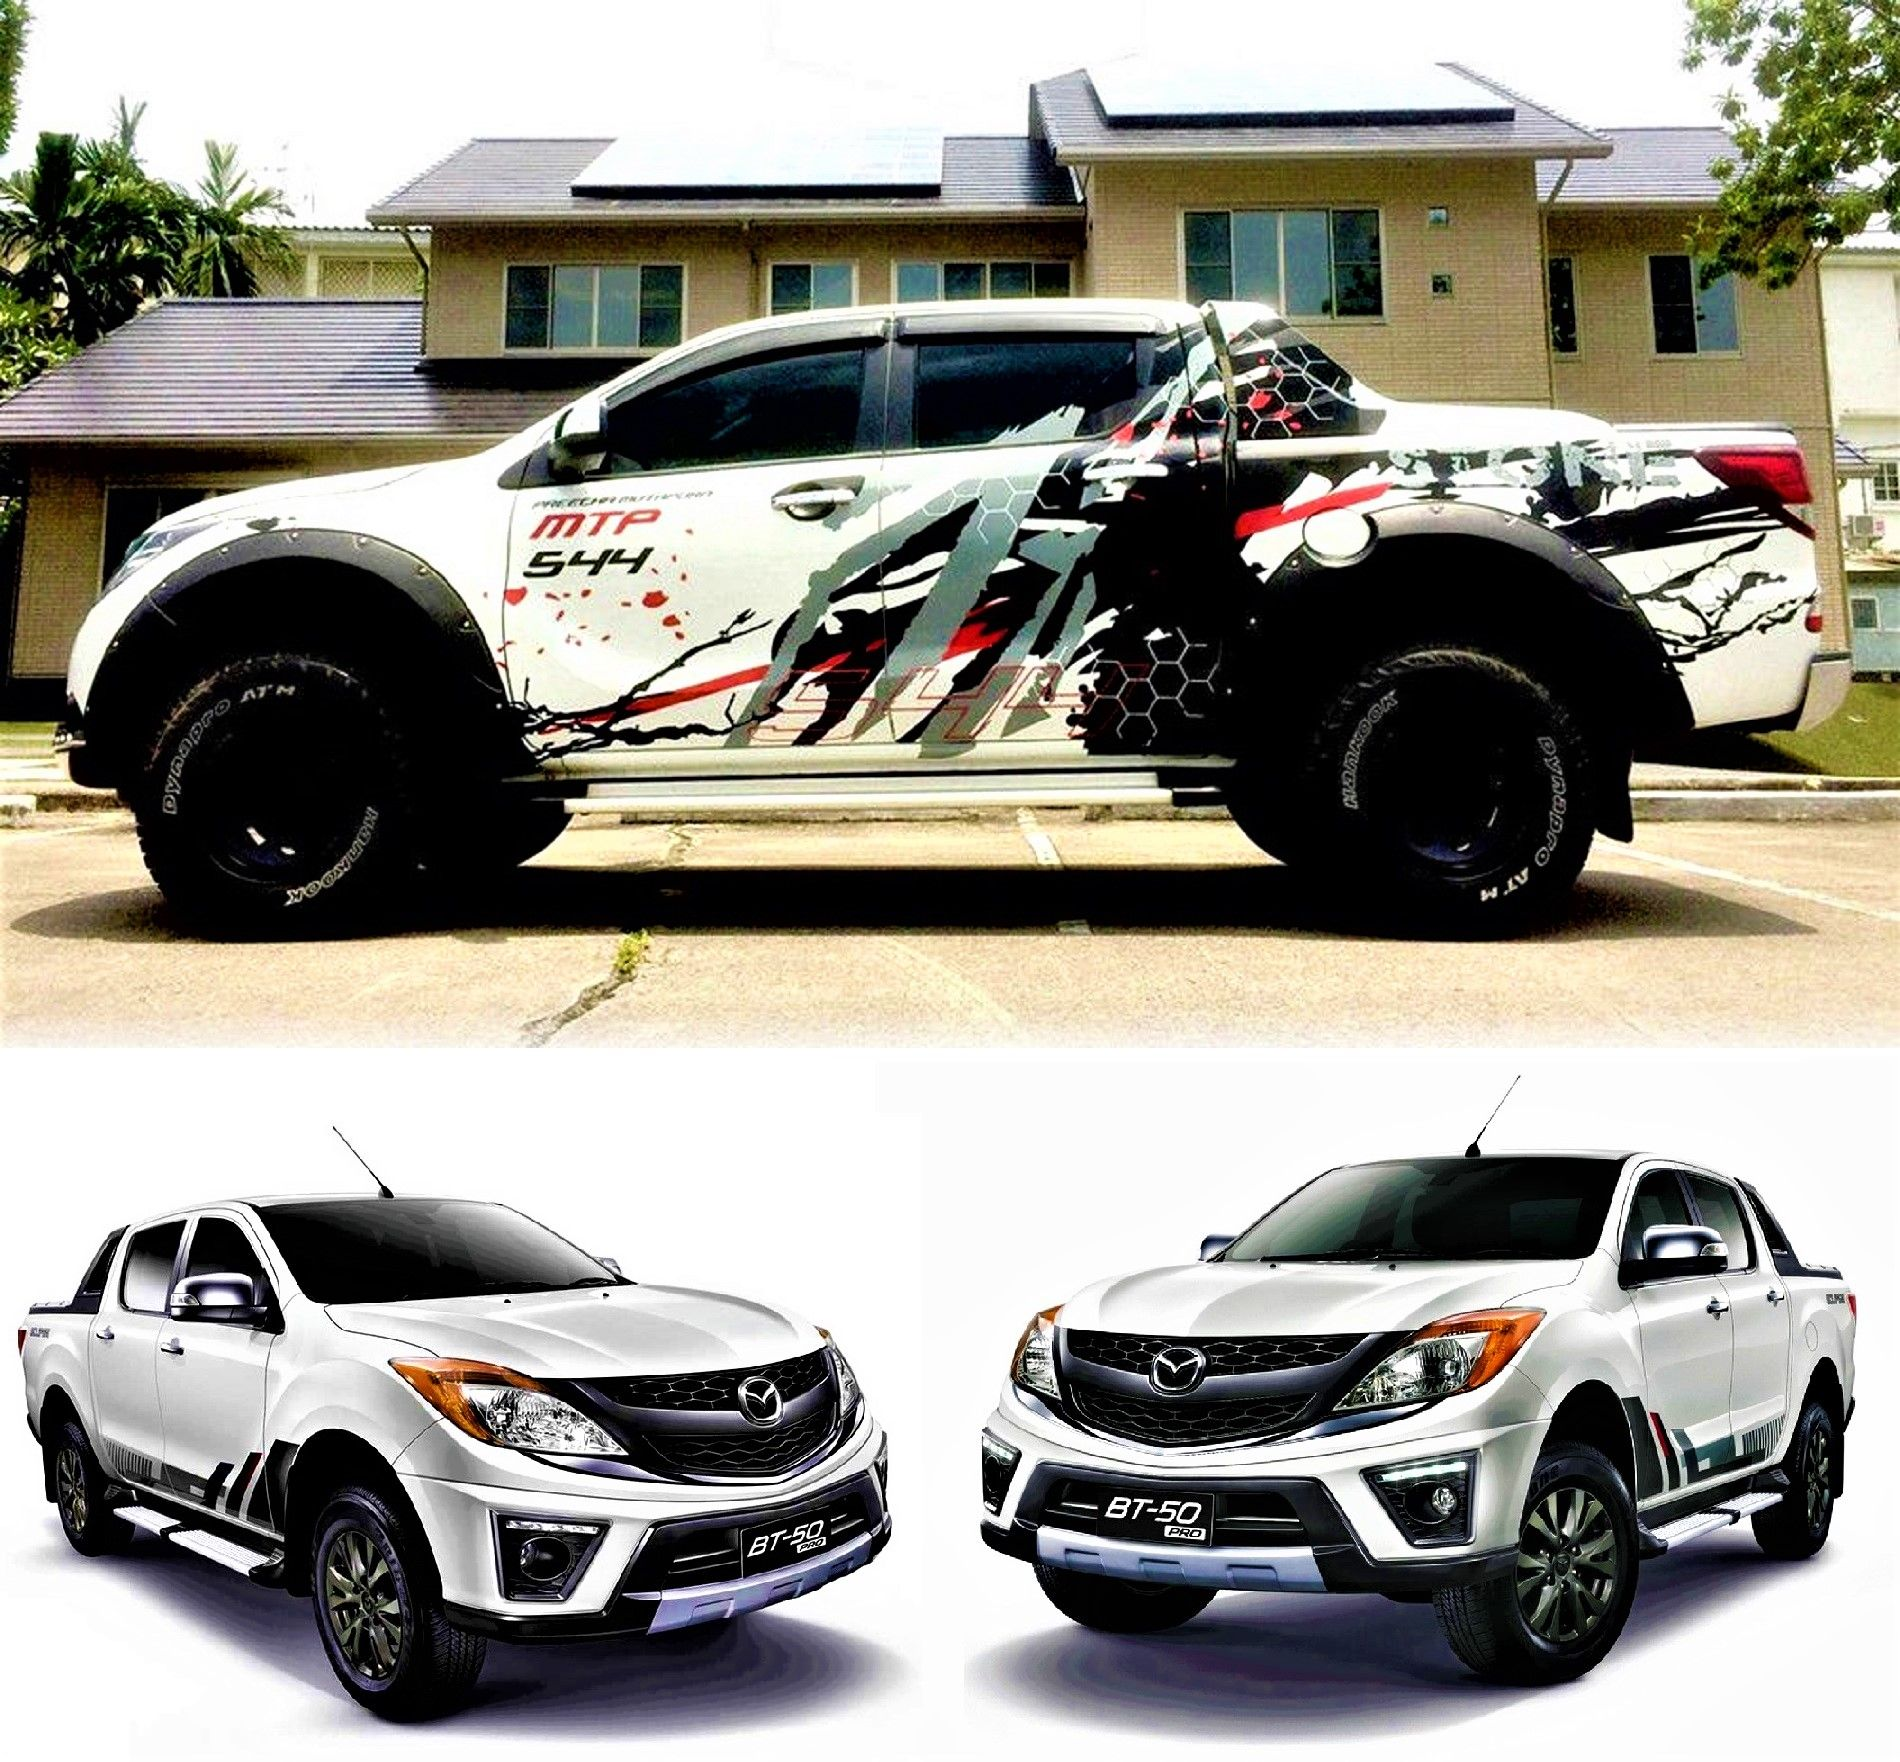 pin by paul muzzi muscroft on 2018 mazda bt 50 pinterest mazda cars and 4x4. Black Bedroom Furniture Sets. Home Design Ideas